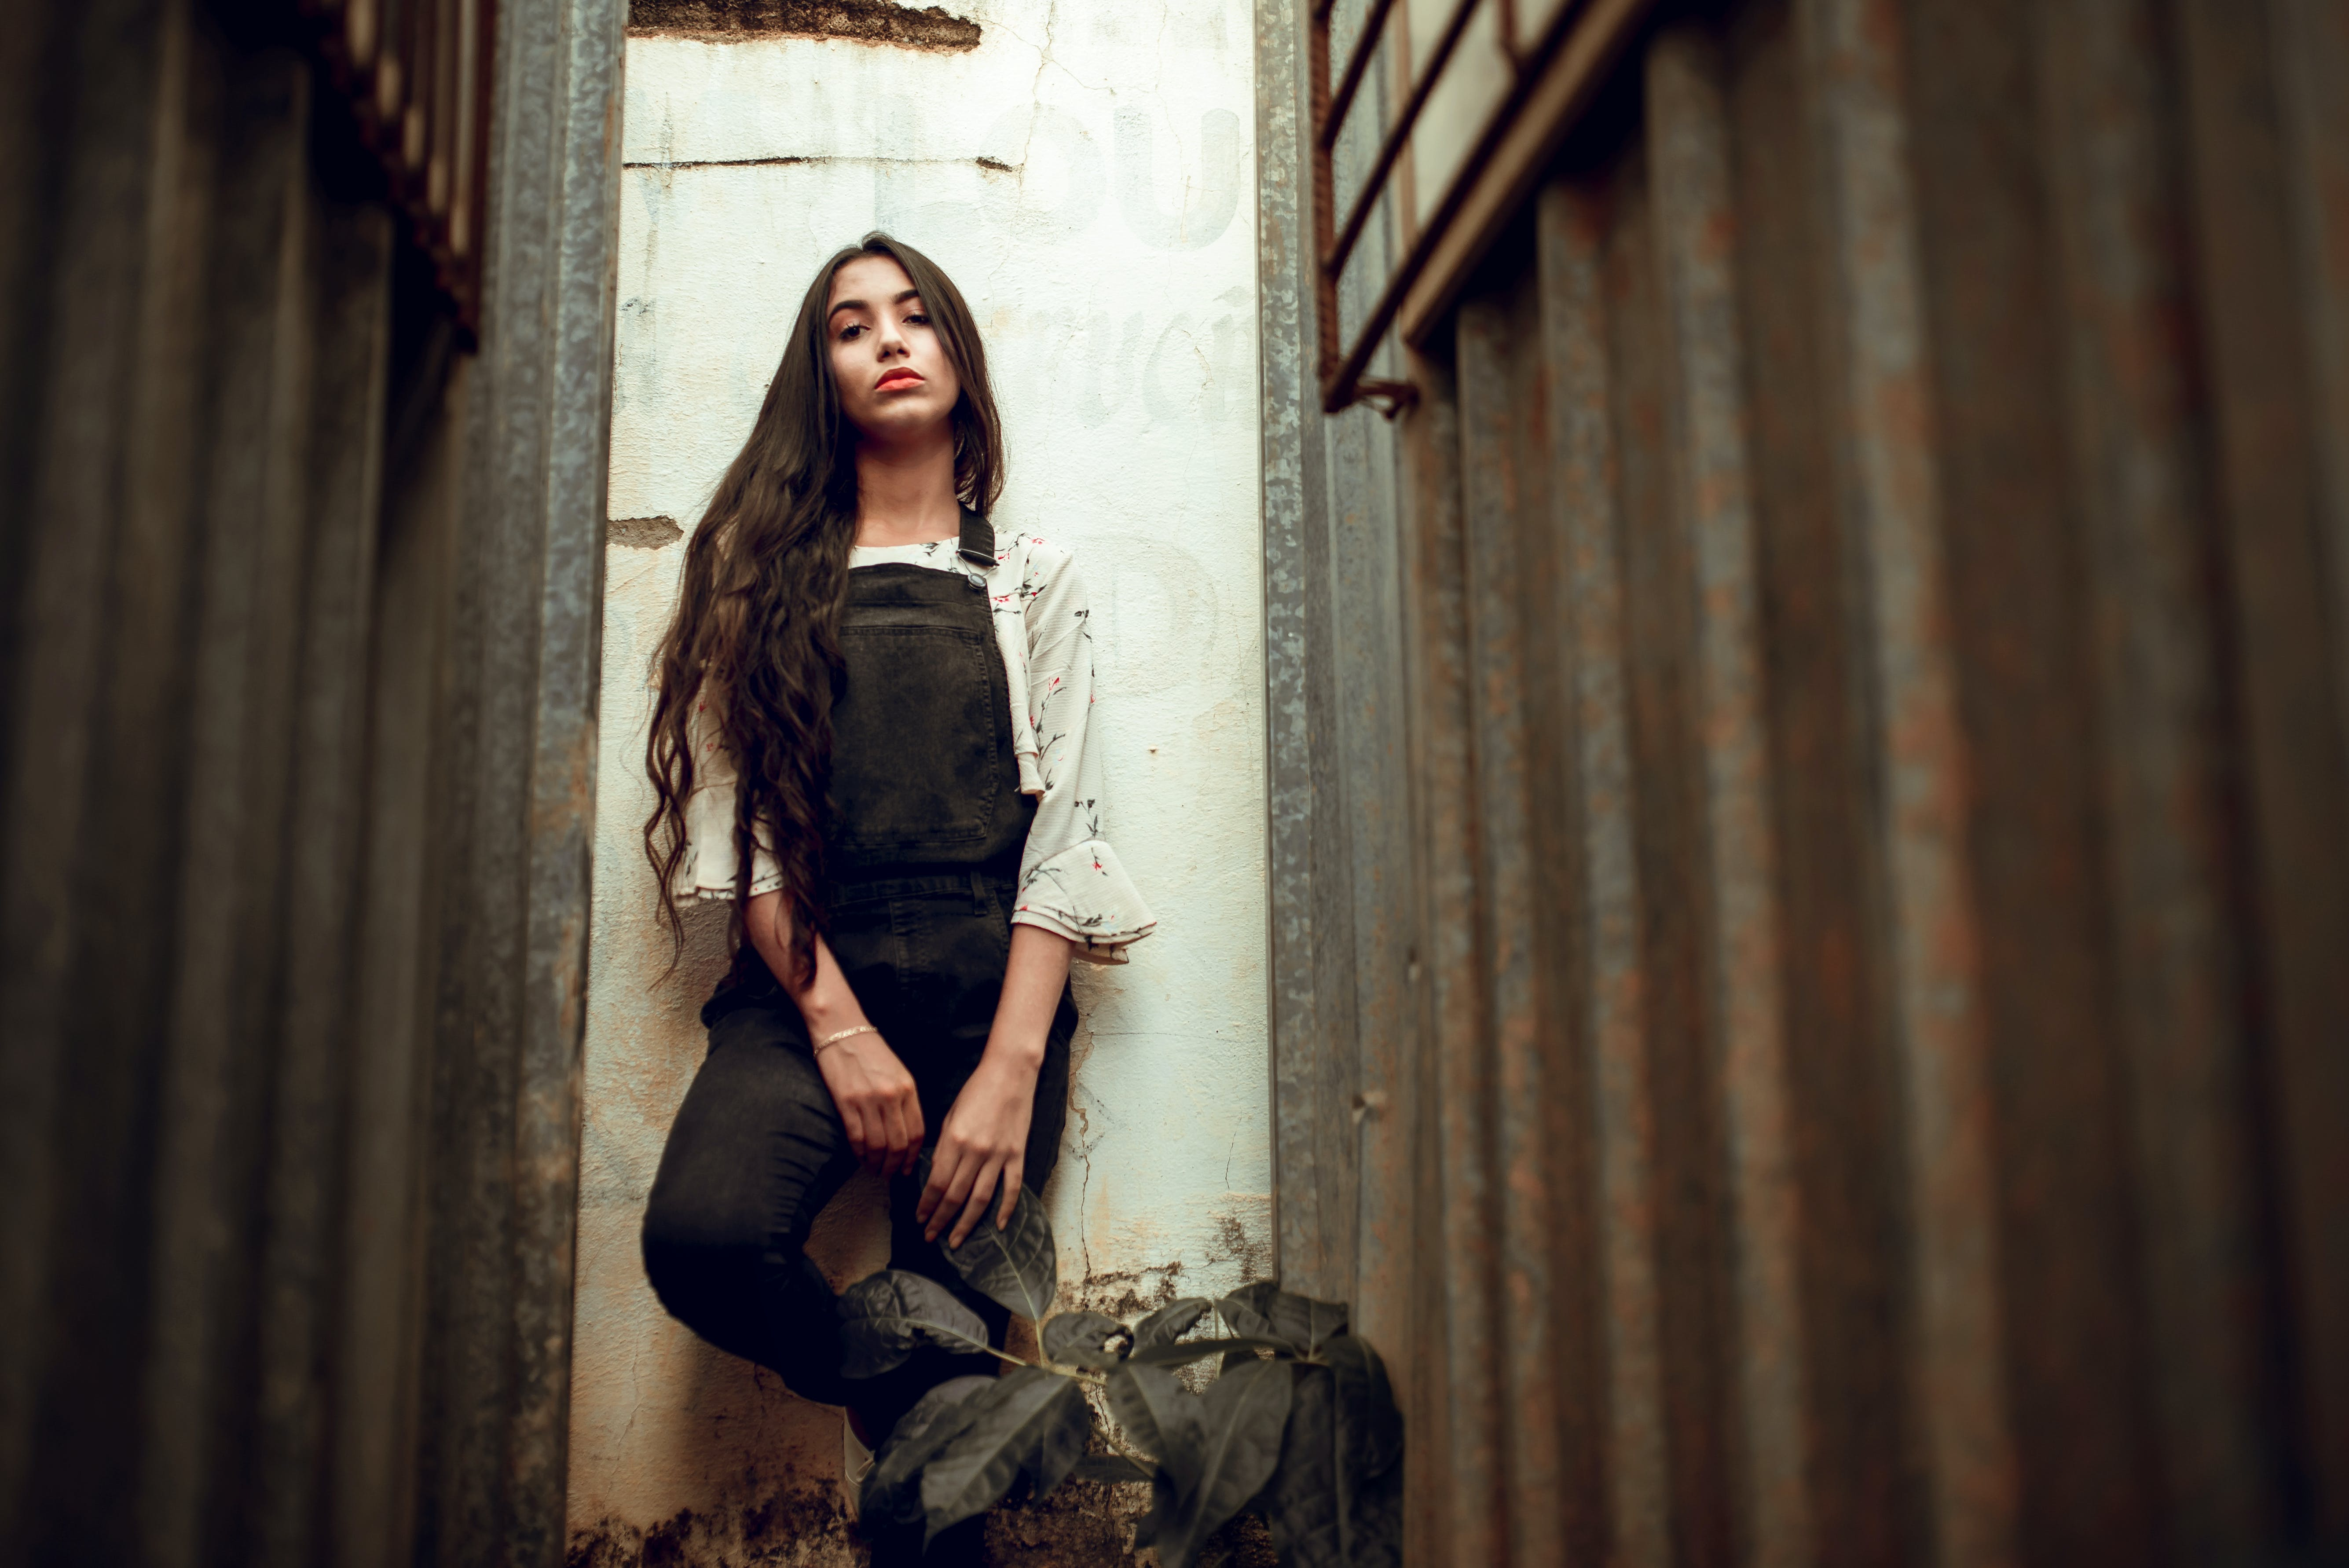 Woman In Black Overalls Standing Against Wall